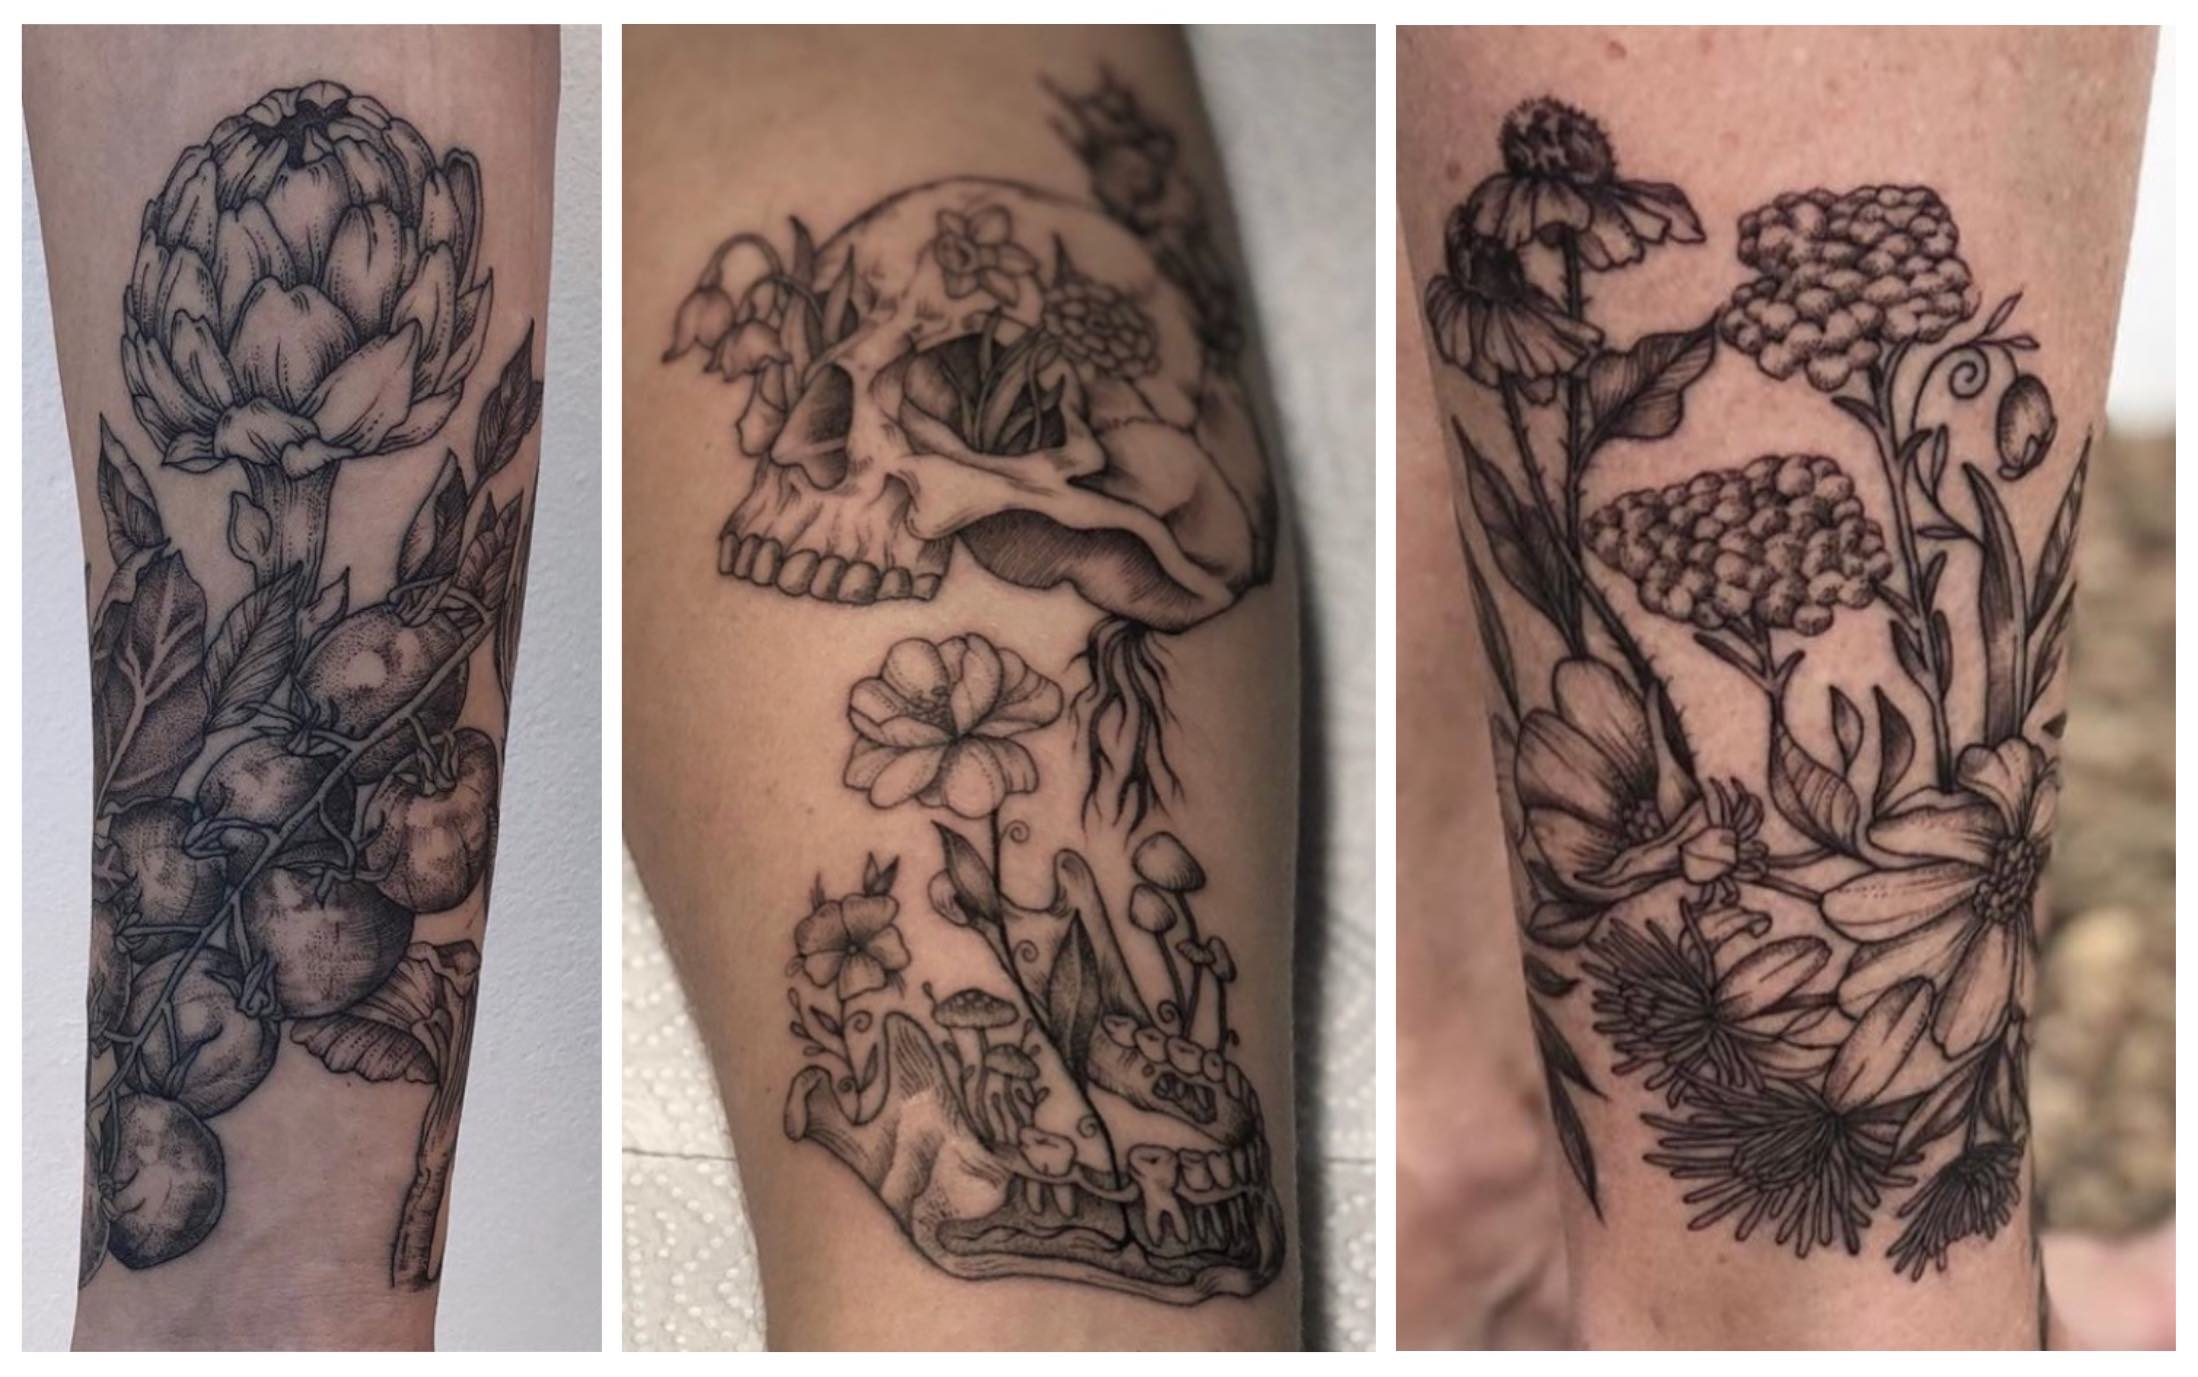 A selection of tattoos done by Kat Richter